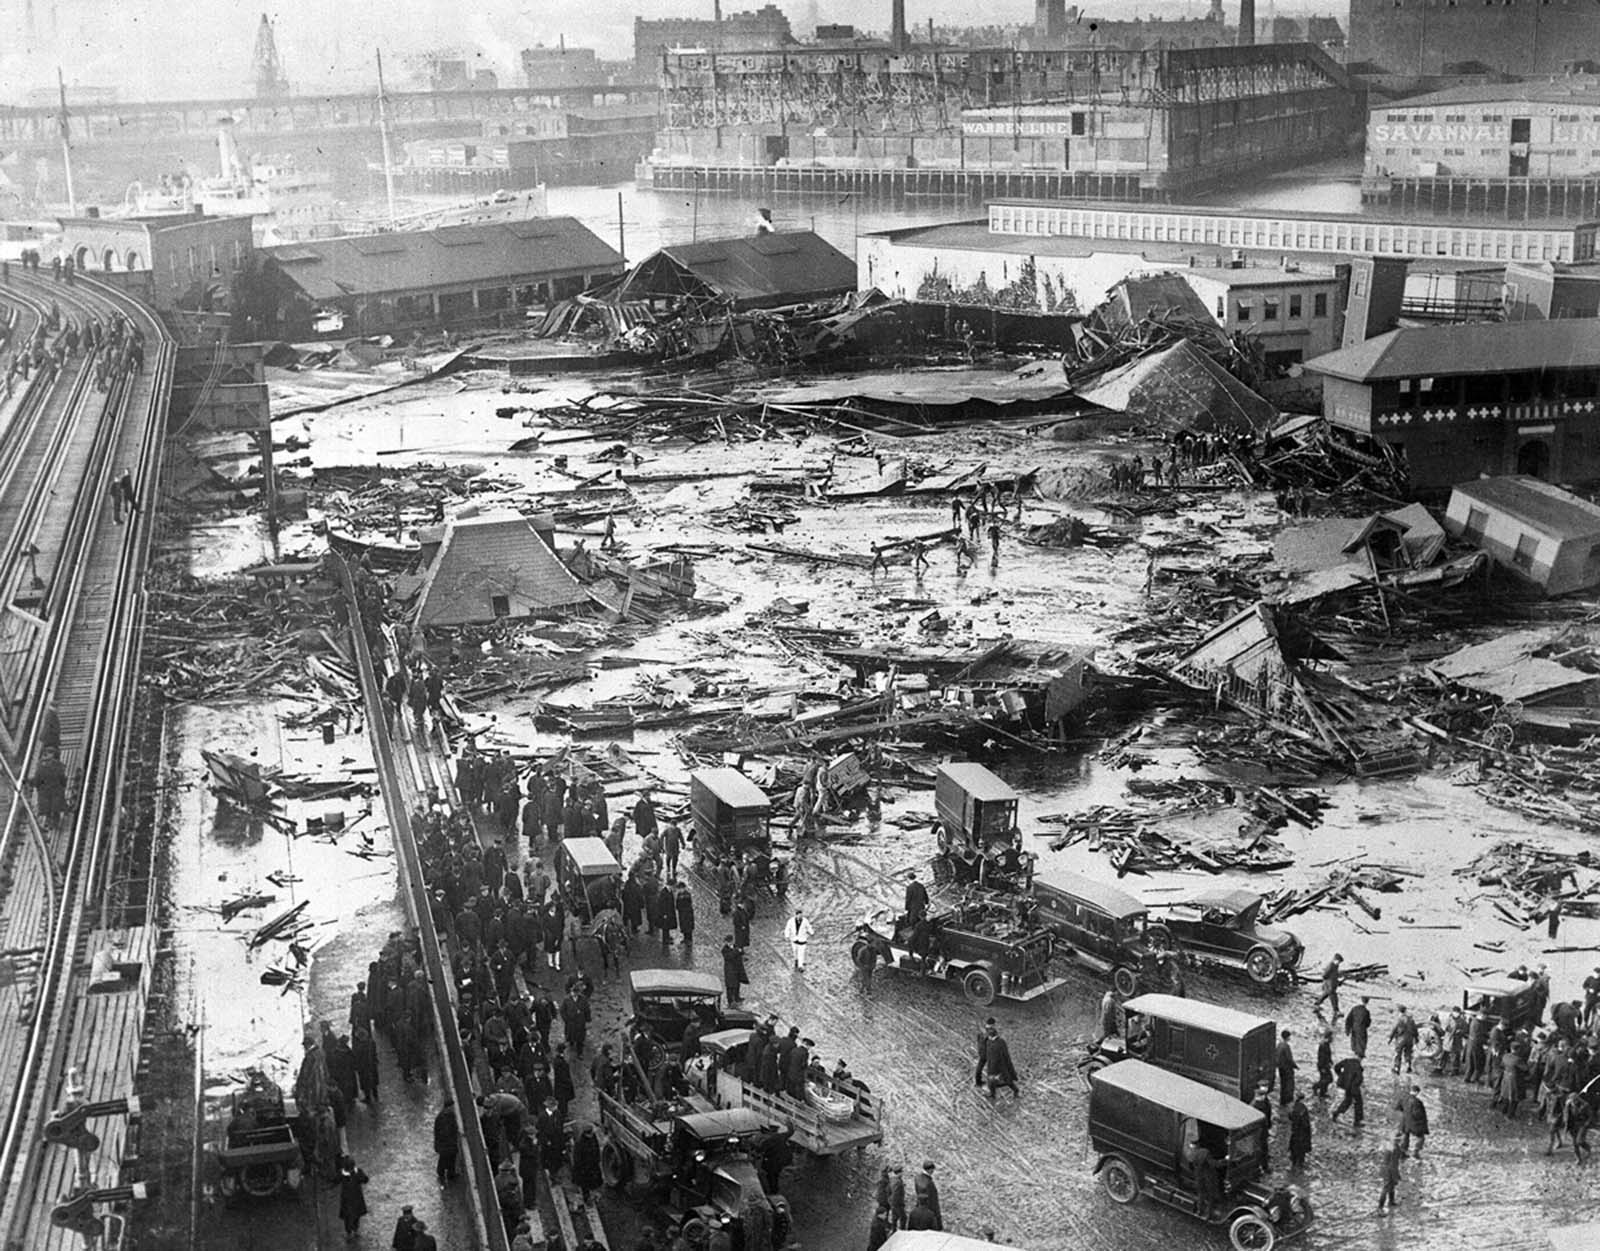 This aerial view shows the site of the molasses storage tank explosion in the section of Commercial St. between Copps Hill and the playground of North End Park in Boston, Massachusetts, on January 15, 1919. The explosion of the steel vat, ninety feet in diameter and fifty-two feet in height, caused 2.3 million gallons of molasses to flood the area, killing 21 people and injuring 150. In the background is the Navy Yard in Charlestown.